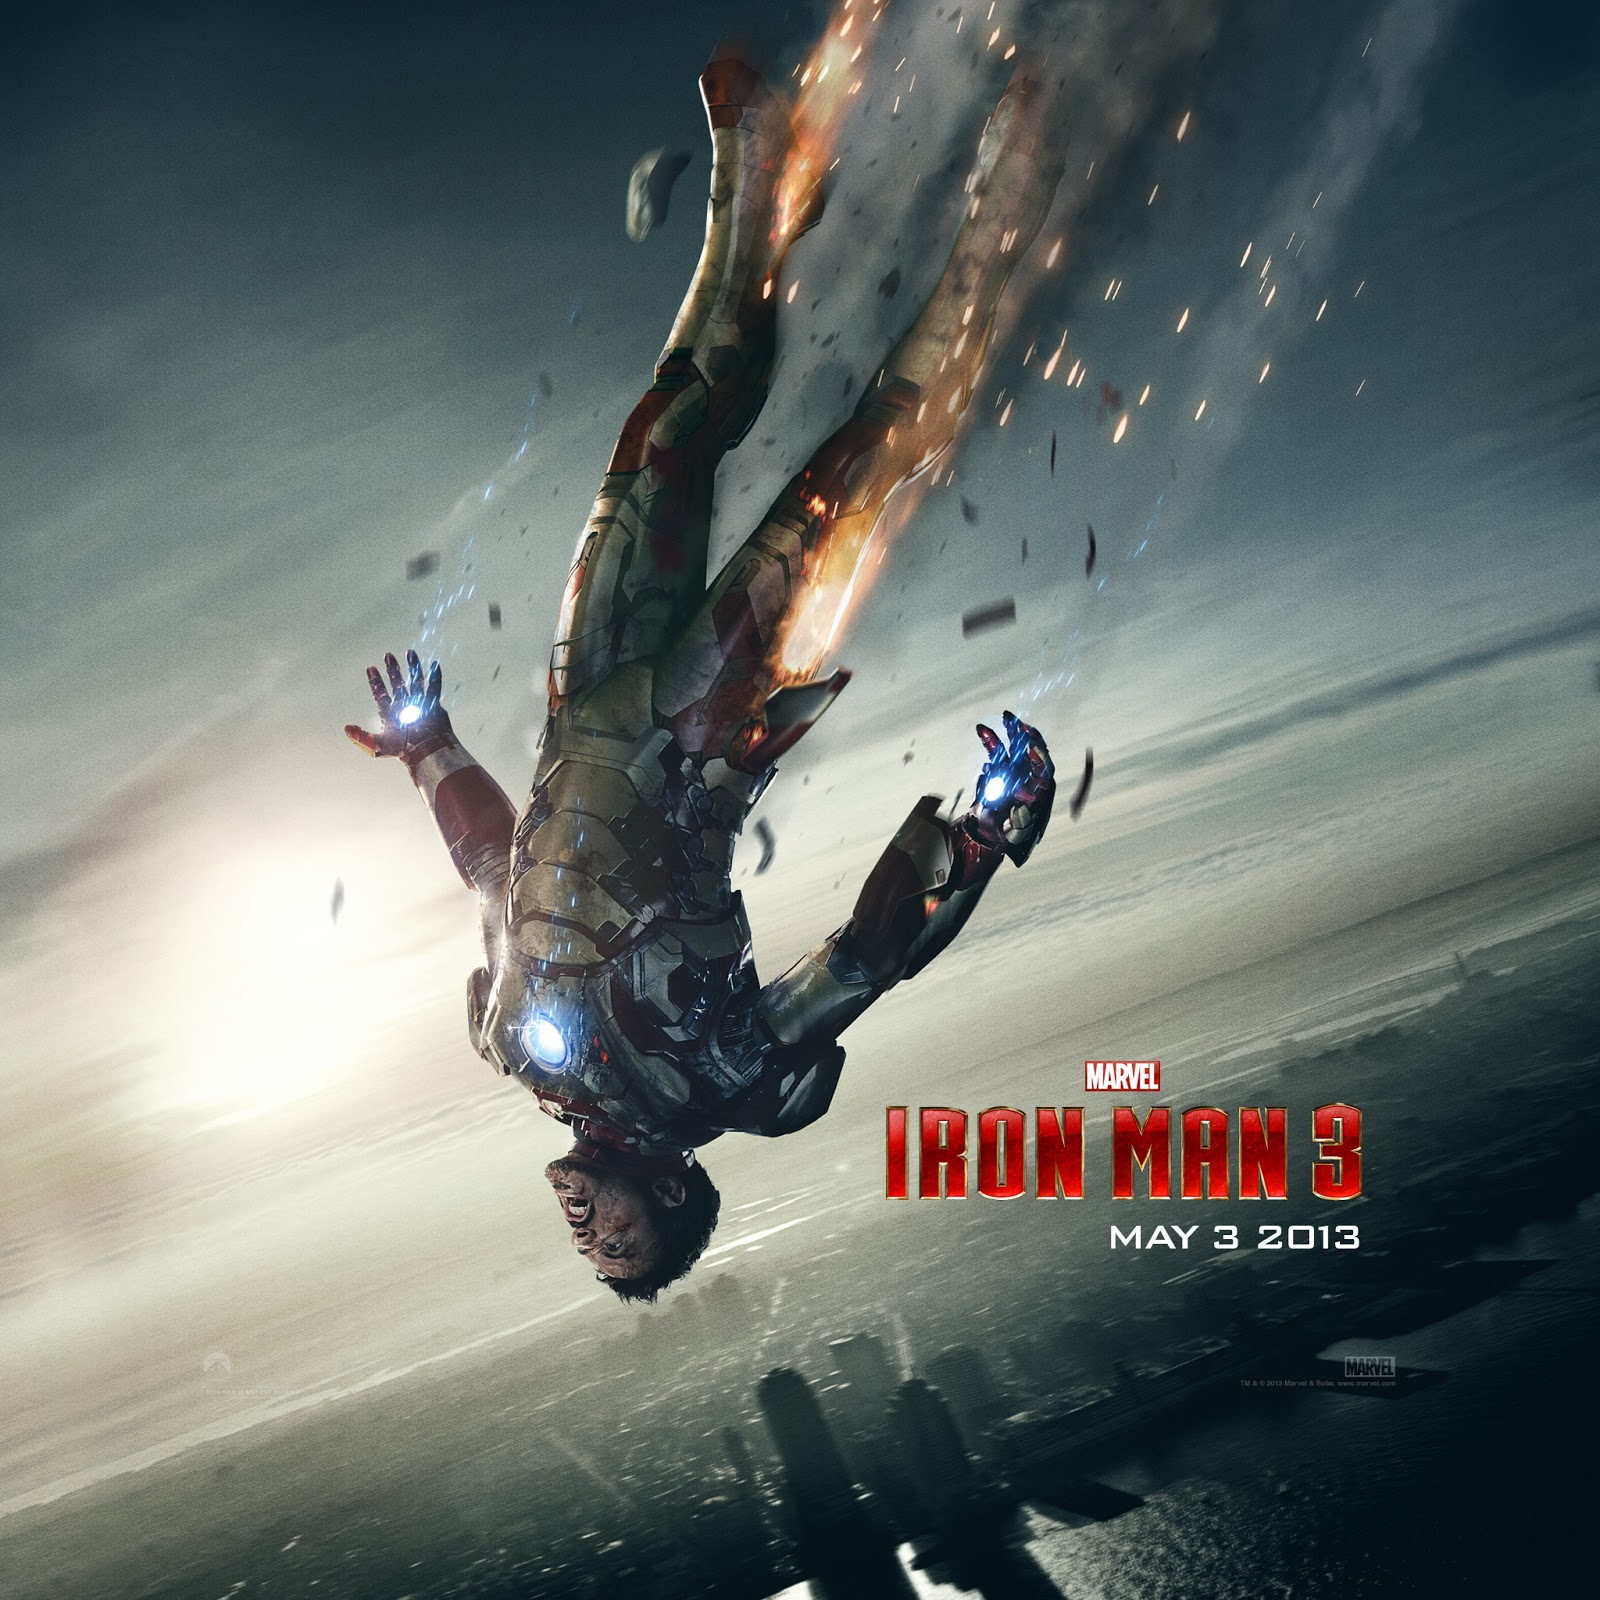 Iron Man 3 iPad wallpaper 2048x2048 005